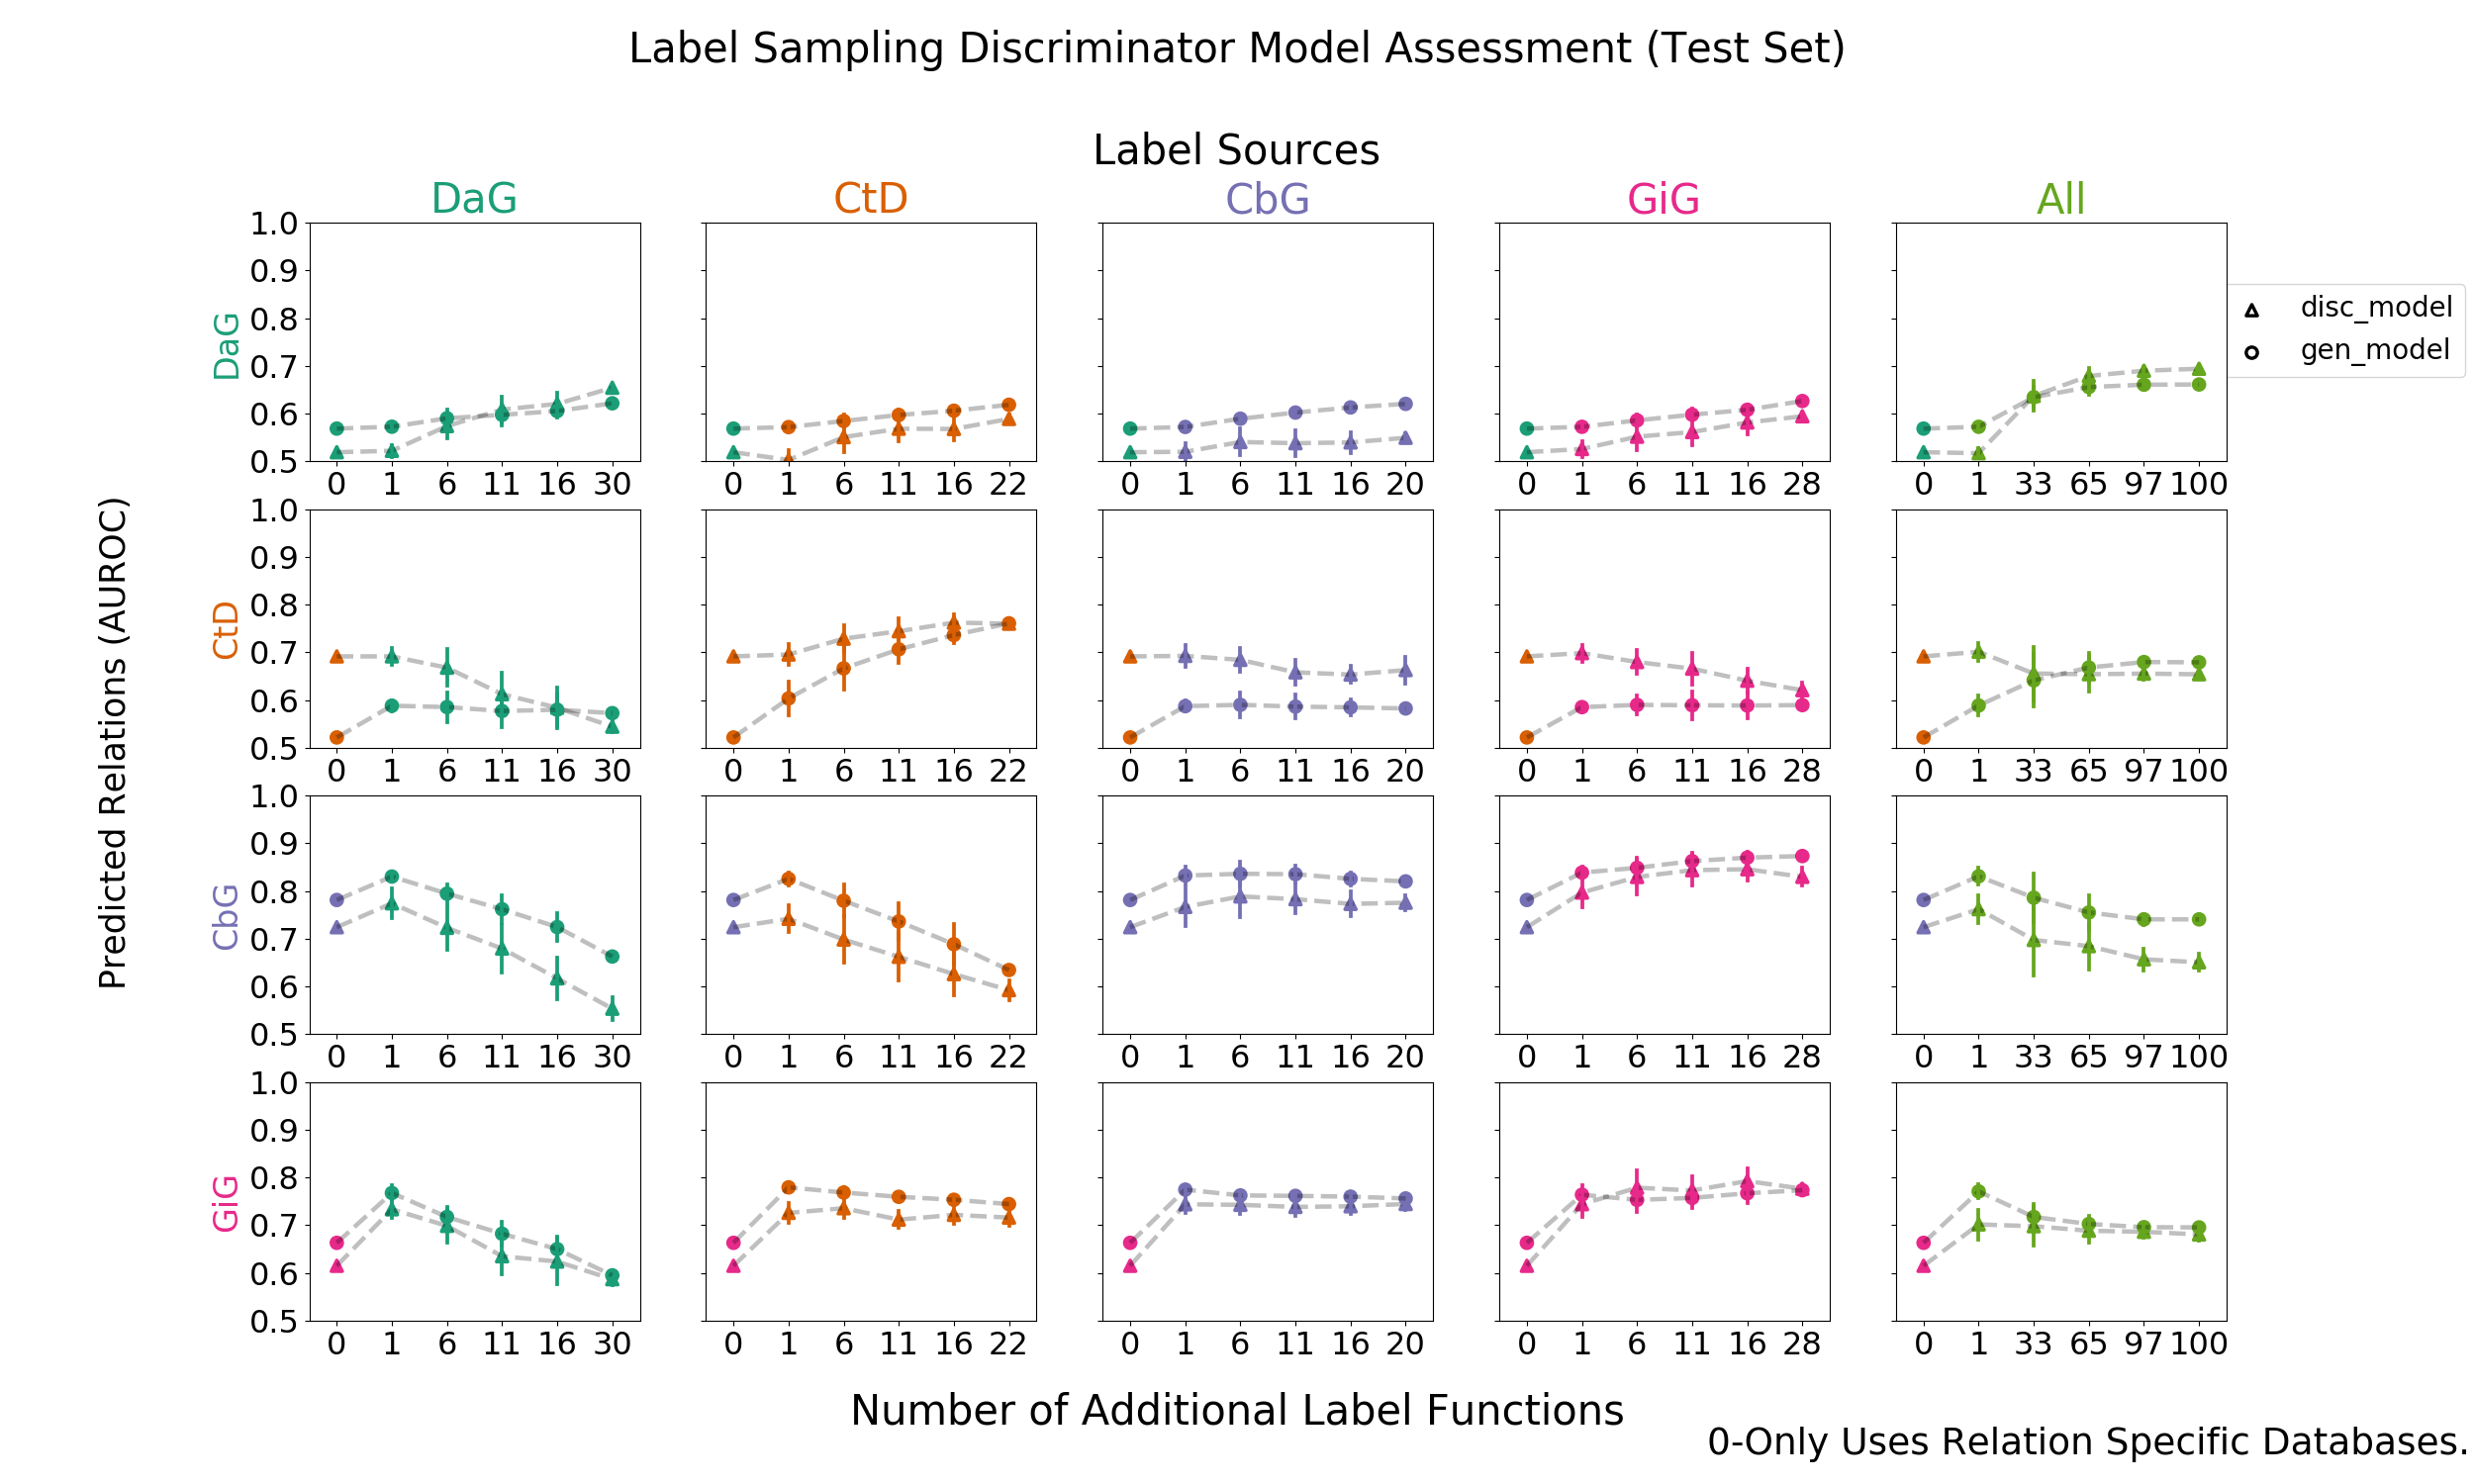 Figure 7: Grid of AUROC scores for each discriminative model trained using generated labels from the generative models. The rows depict the edge type each model is trying to predict and the columns are the edge type specific sources from which each label function was sampled. For example, the top-left most square depicts the discriminator model predicting DaG sentences, while randomly sampling label functions designed to predict the DaG relationship. The error bars over the points represents the standard deviation between sampled runs. The square towards the right depicts the discriminative model predicting DaG sentences, while randomly sampling label functions designed to predict the CtD relationship. This pattern continues filling out the rest of the grid. The right most column consists of pooling every relationship specific label function and proceeding as above.